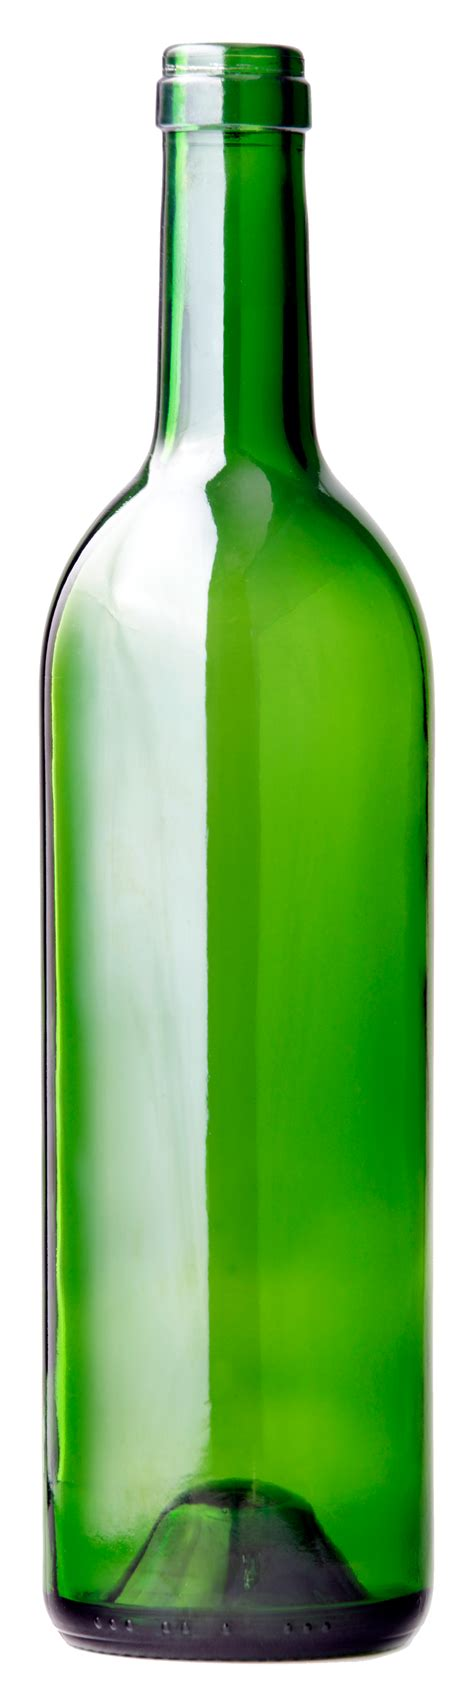 Green Bottles bottle png images free